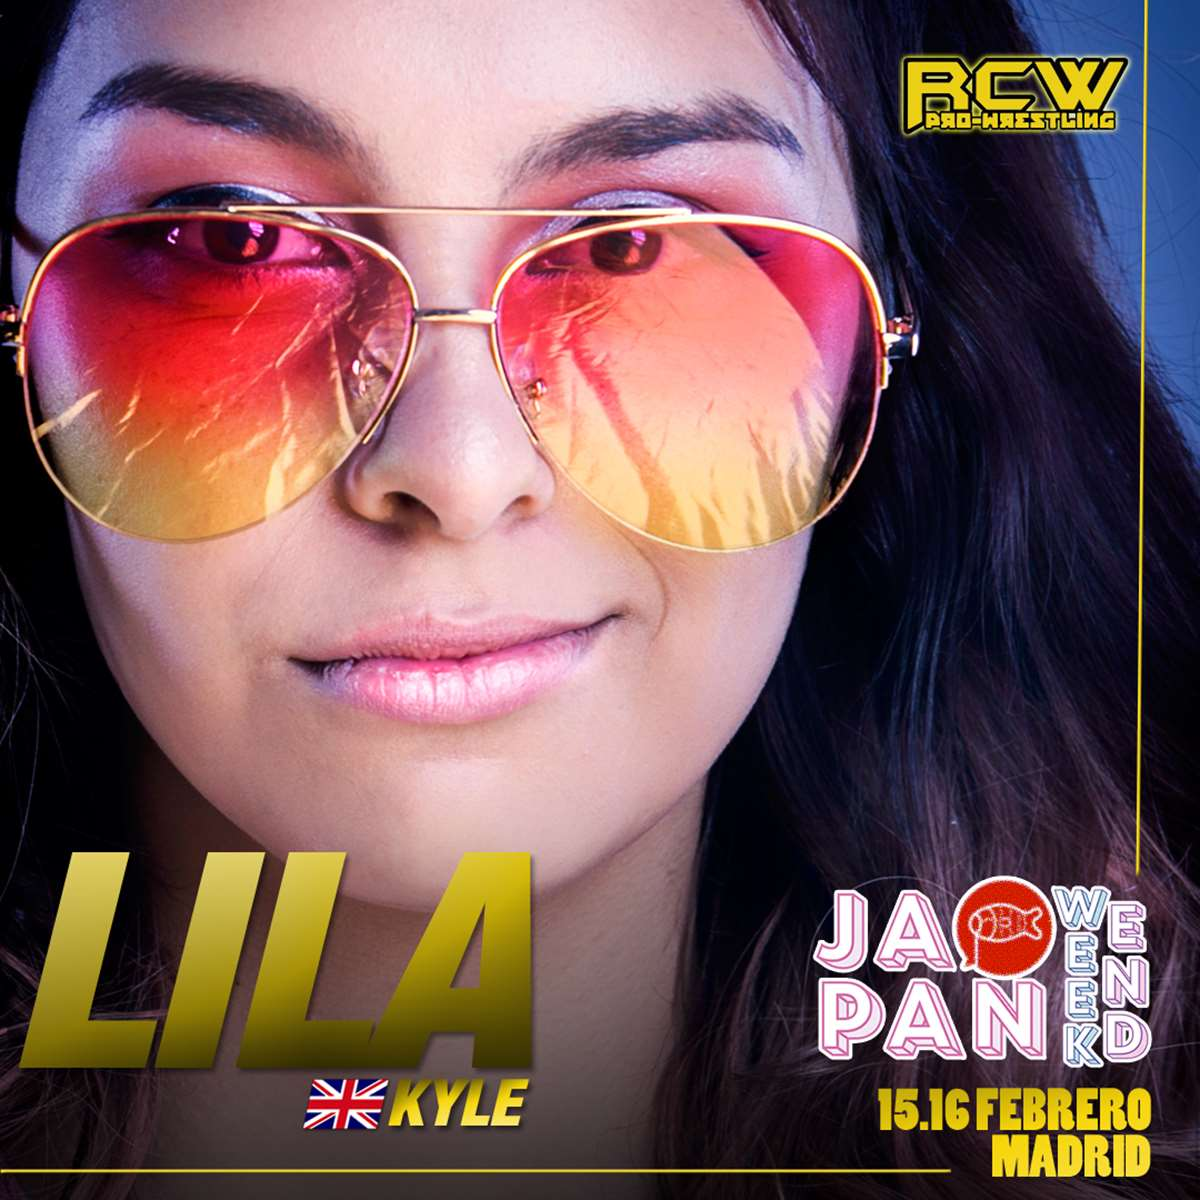 Lila Kyle anunciada por RCW para Japan Weekend